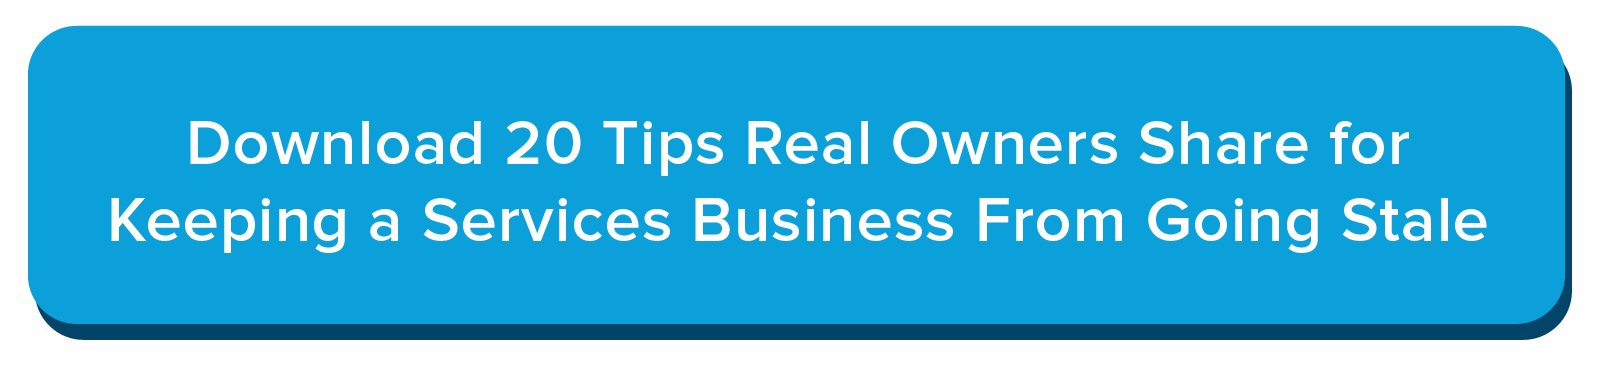 Deputy-20 Tips Real Owners Share for Keeping a Services Business From Going Stale 2-02